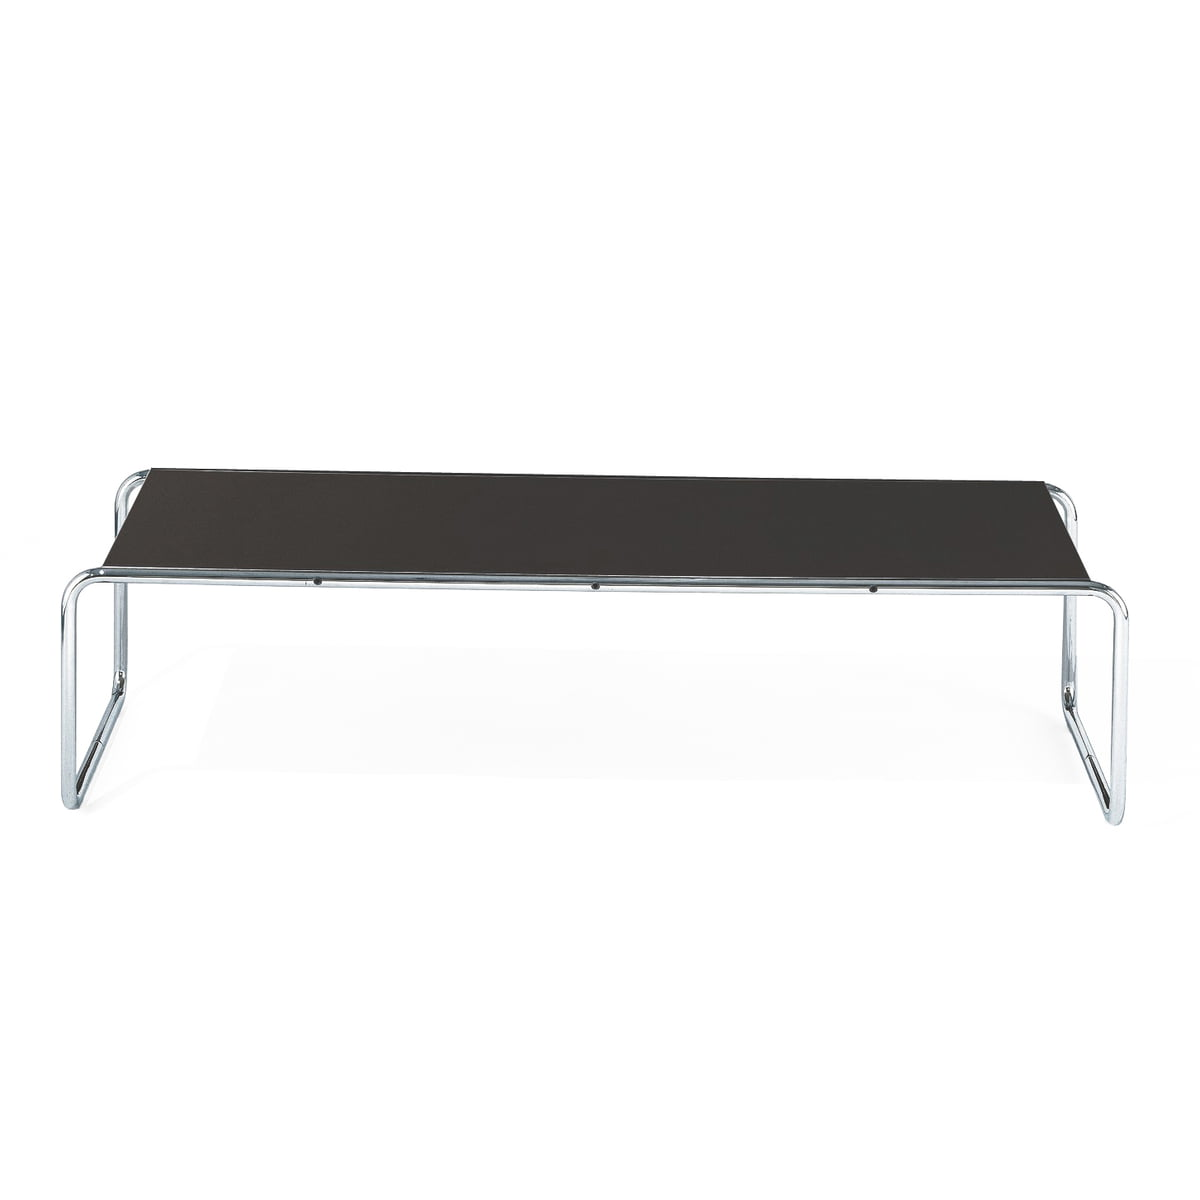 Laccio 2 coffee table marcel breuer table for Connox couchtisch